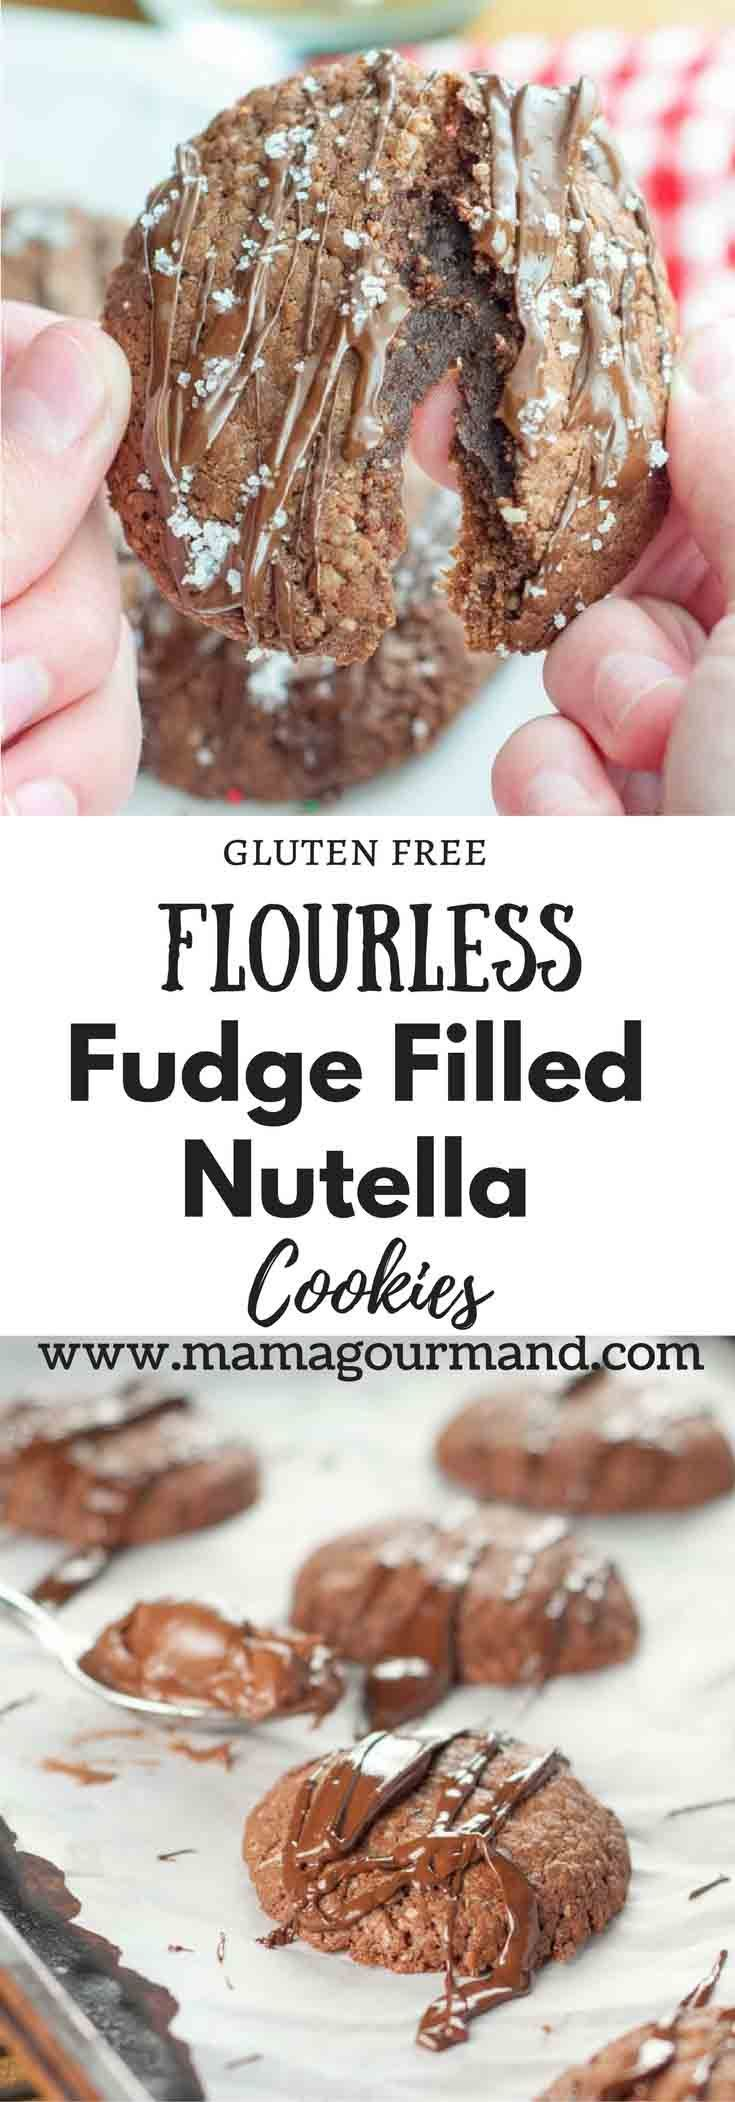 Flourless Fudge Filled Nutella Cookies have a simple two ingredient fudge stuffed inside an easy three ingredient cookie that tastes absolutely heavenly! #glutenfreecookies #nutella #flourless #christmascookies https://www.mamagourmand.com via @mamagourmand